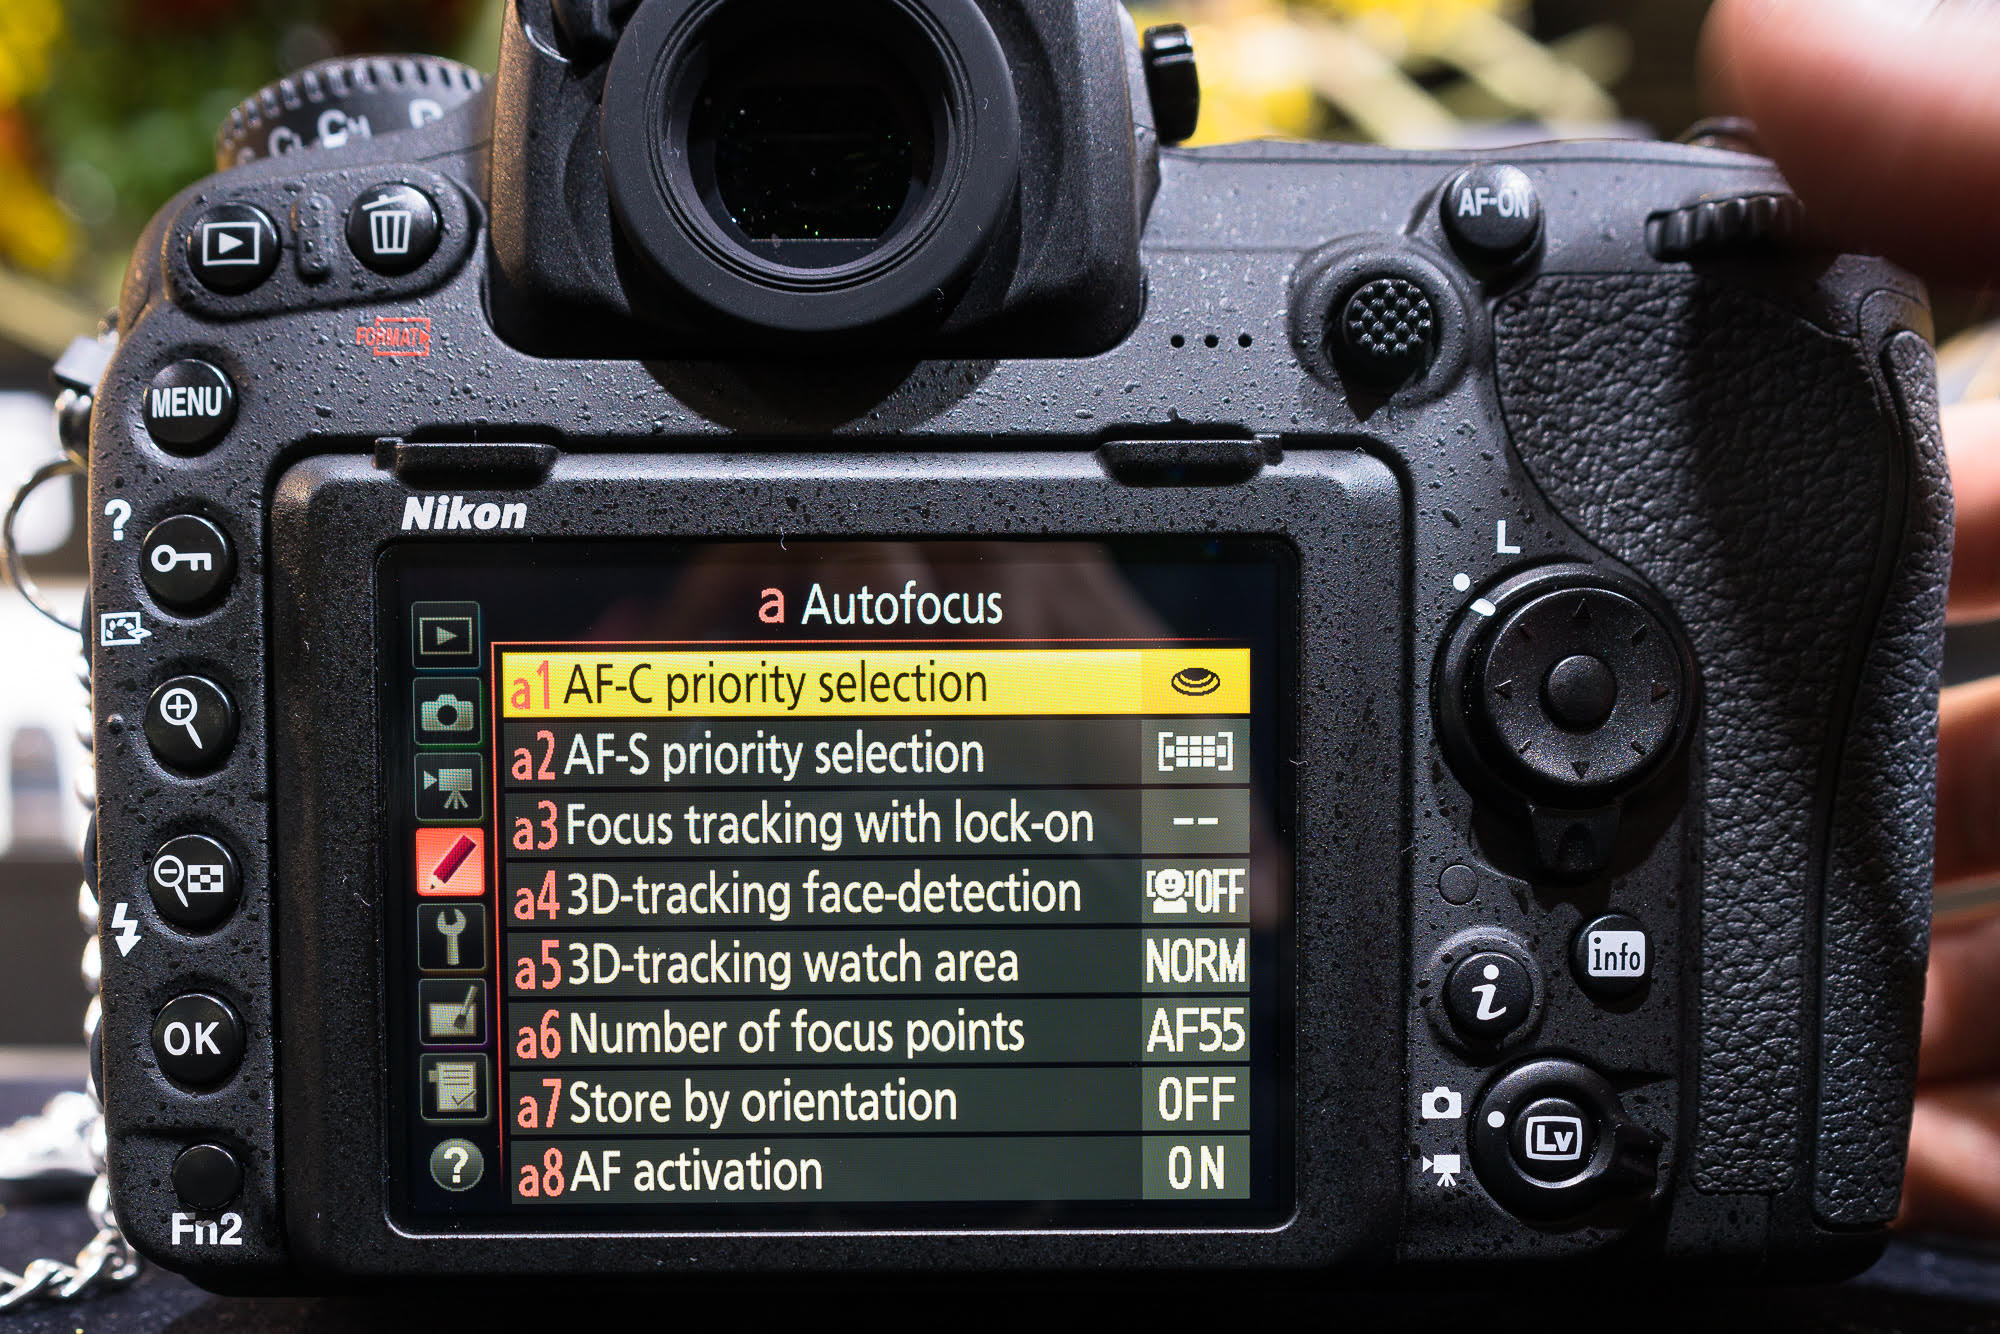 Back button focus: Tips & tricks